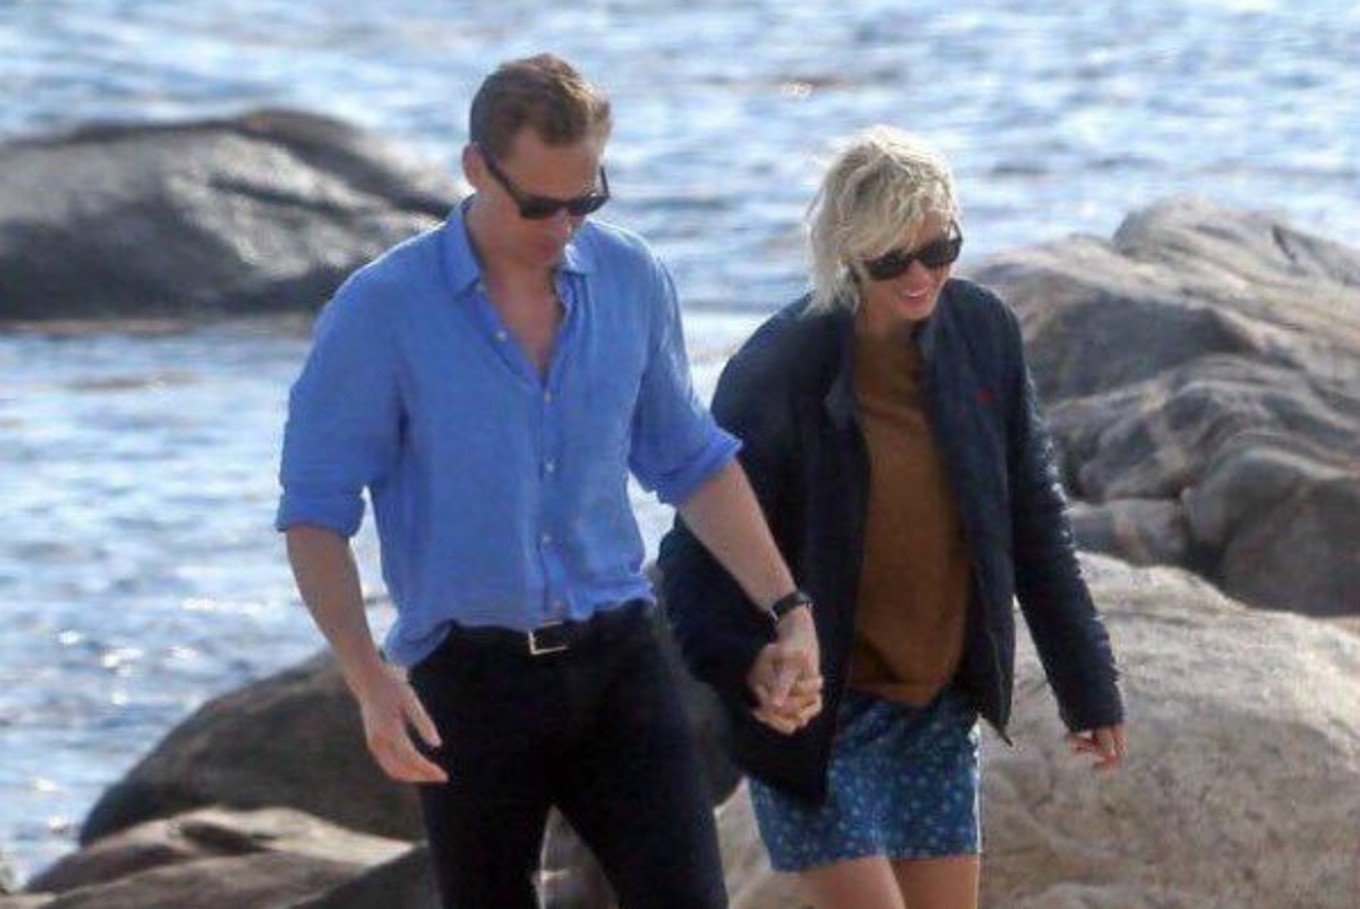 Tom Hiddleston and Taylor Swift 'in love split'